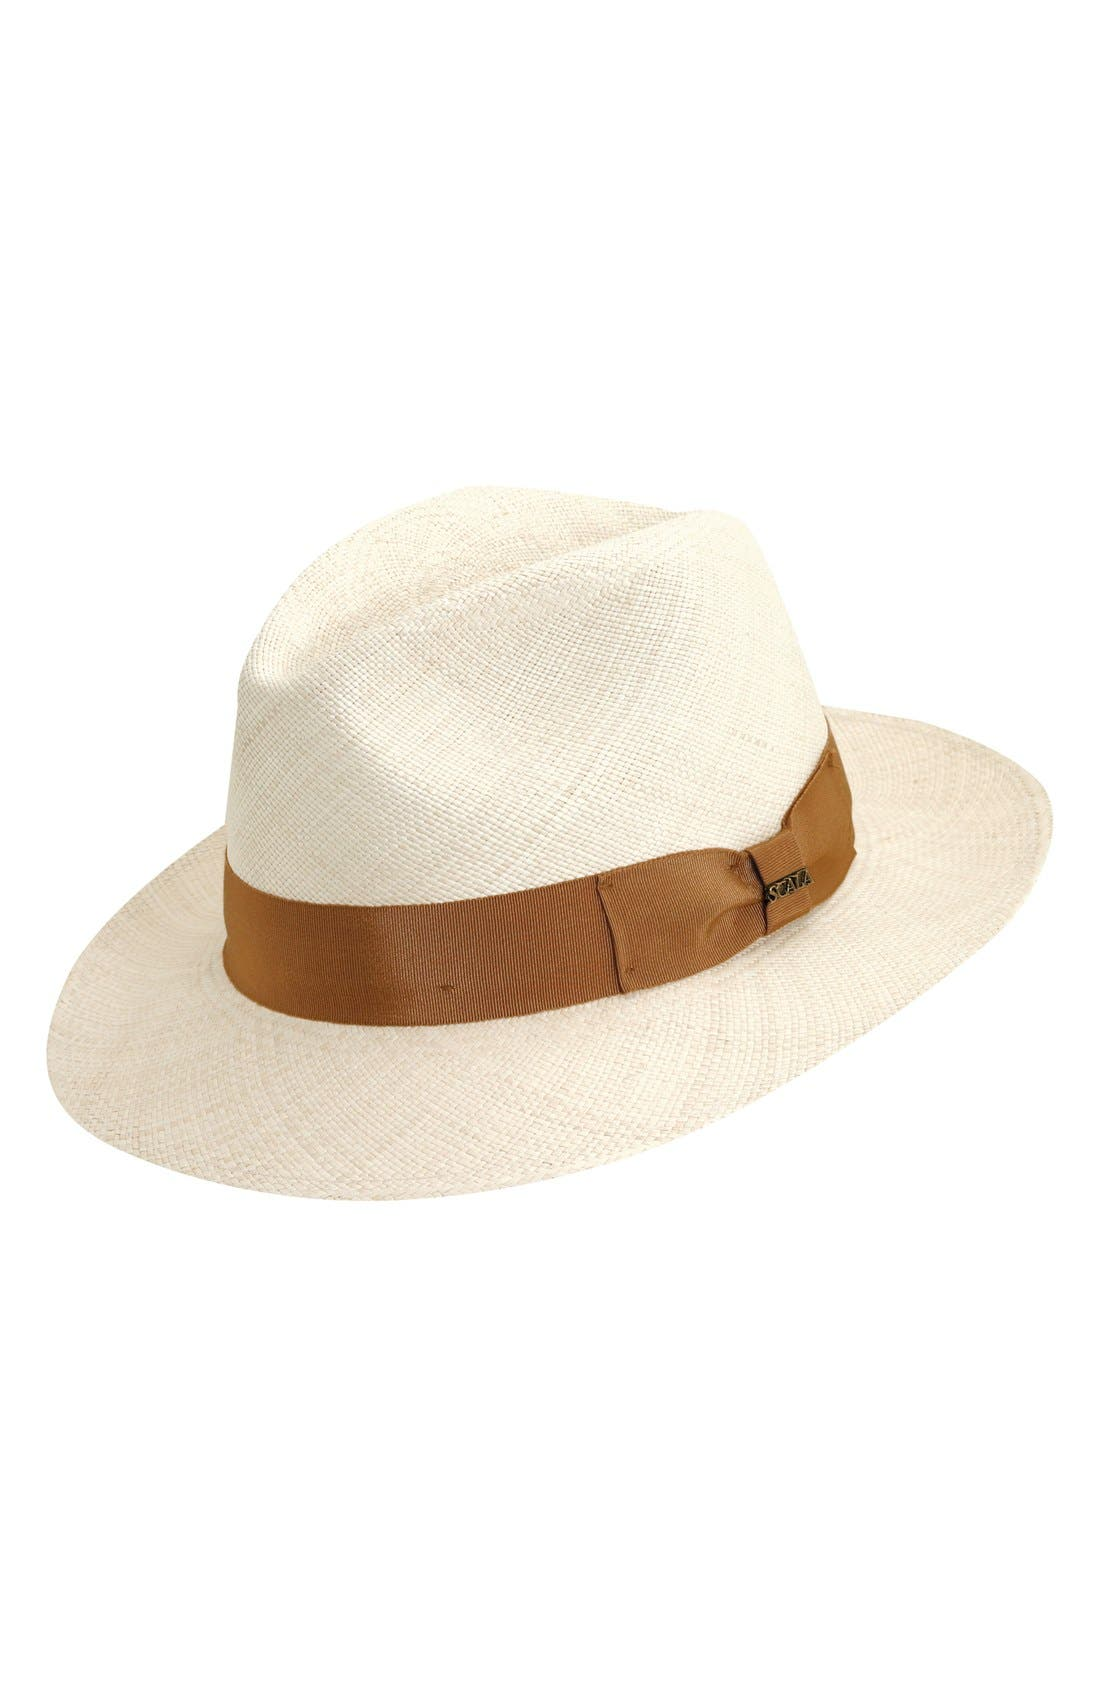 Main Image - Scala Straw Safari Hat